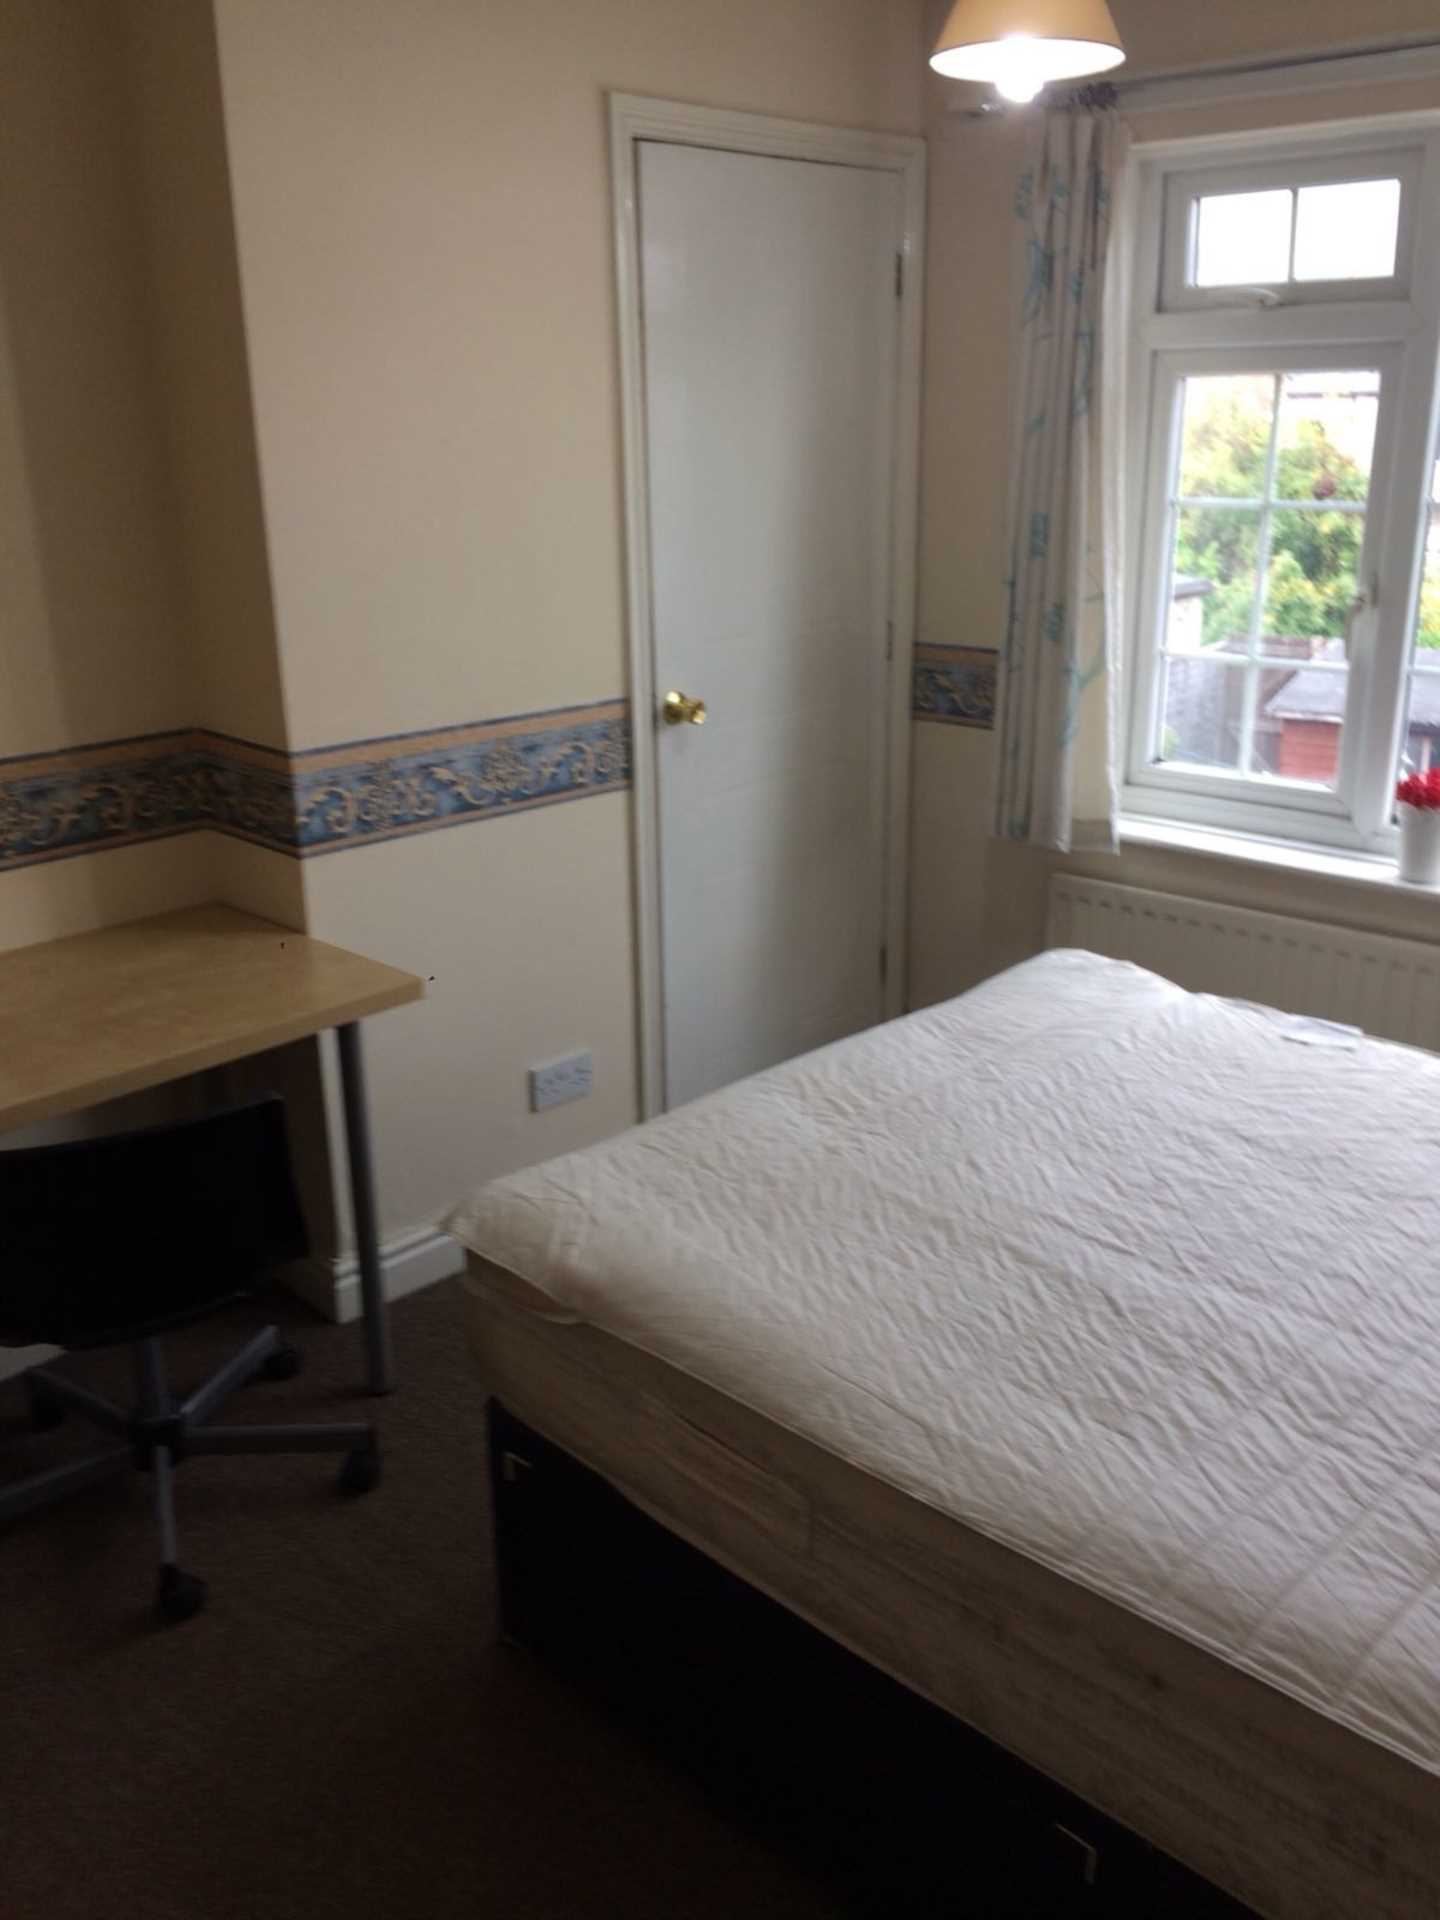 Queensland Avenue - 5 bedroom 2 bathroom student home fully furnished, WIFI & bills included - NO FEES, Image 8